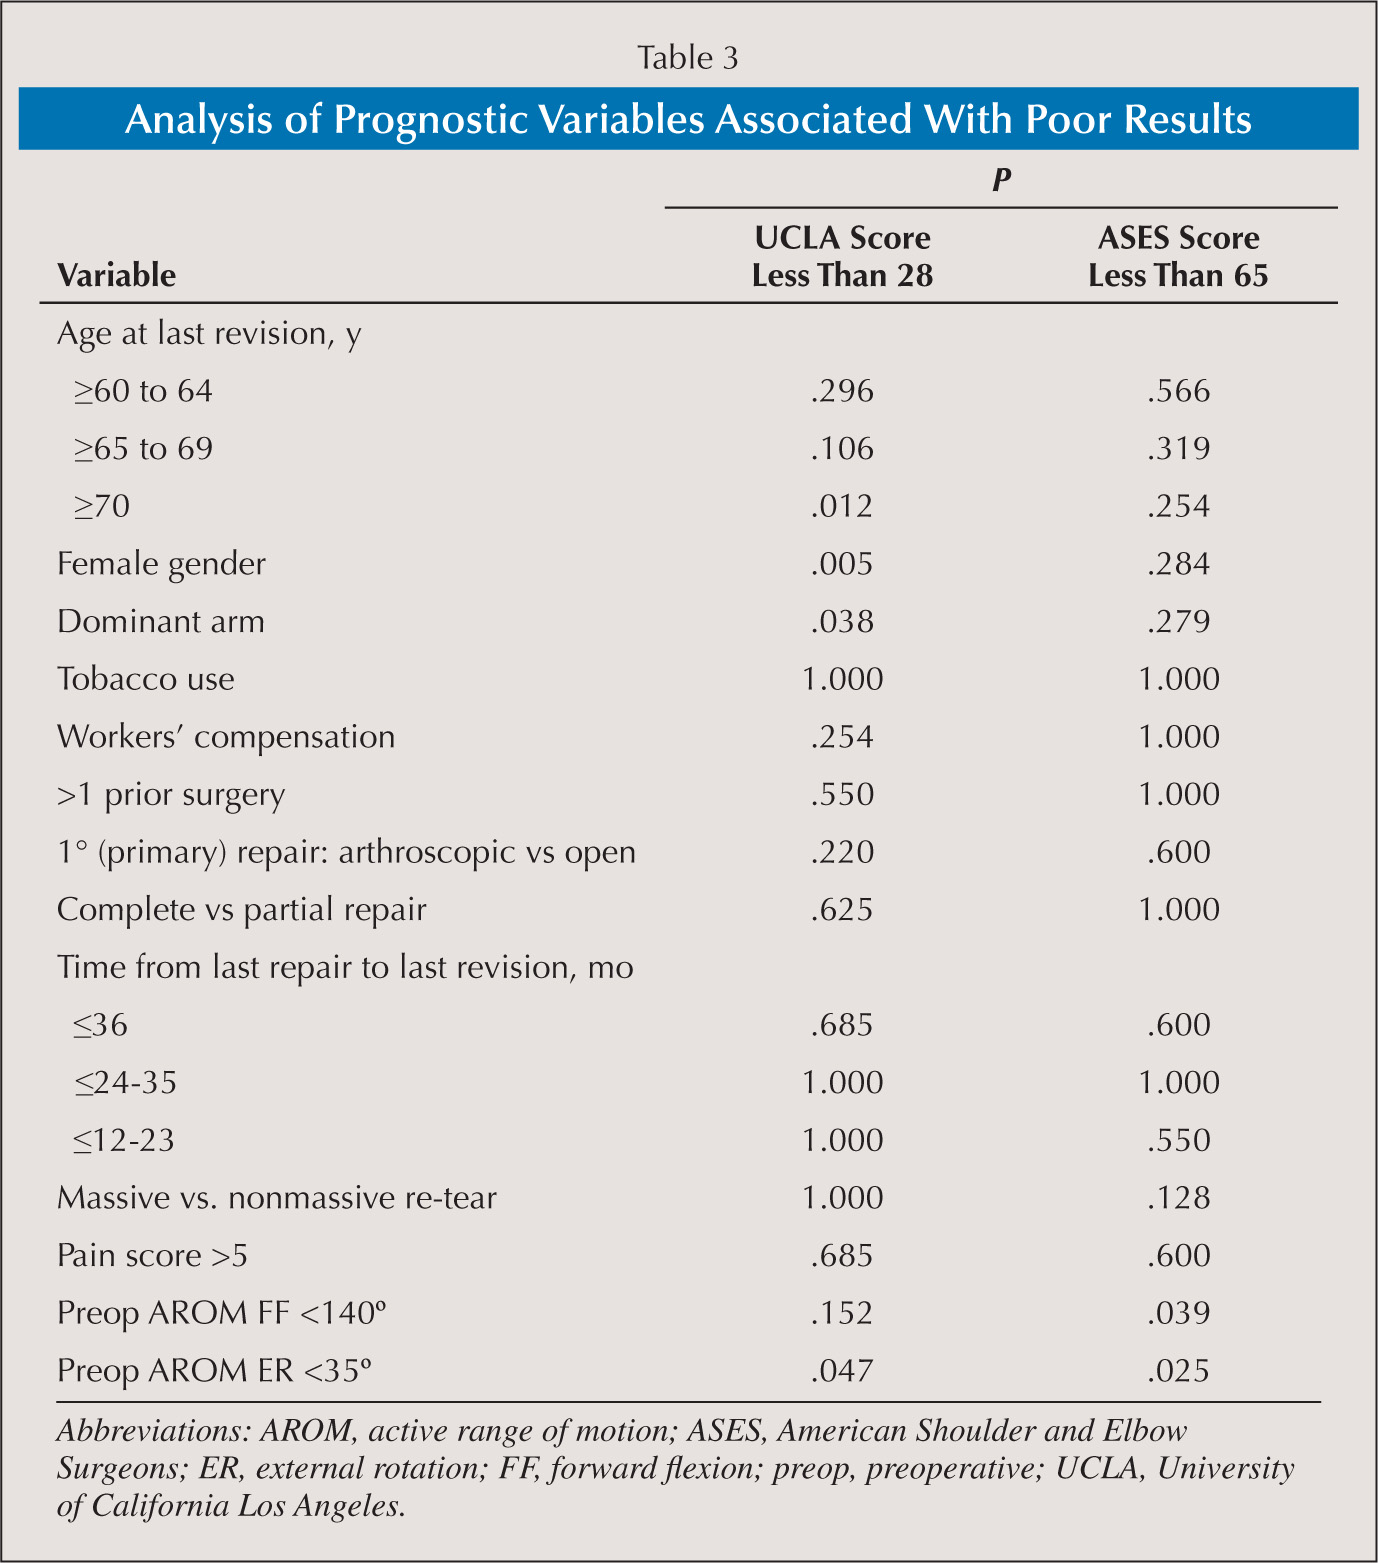 Analysis of Prognostic Variables Associated With Poor Results